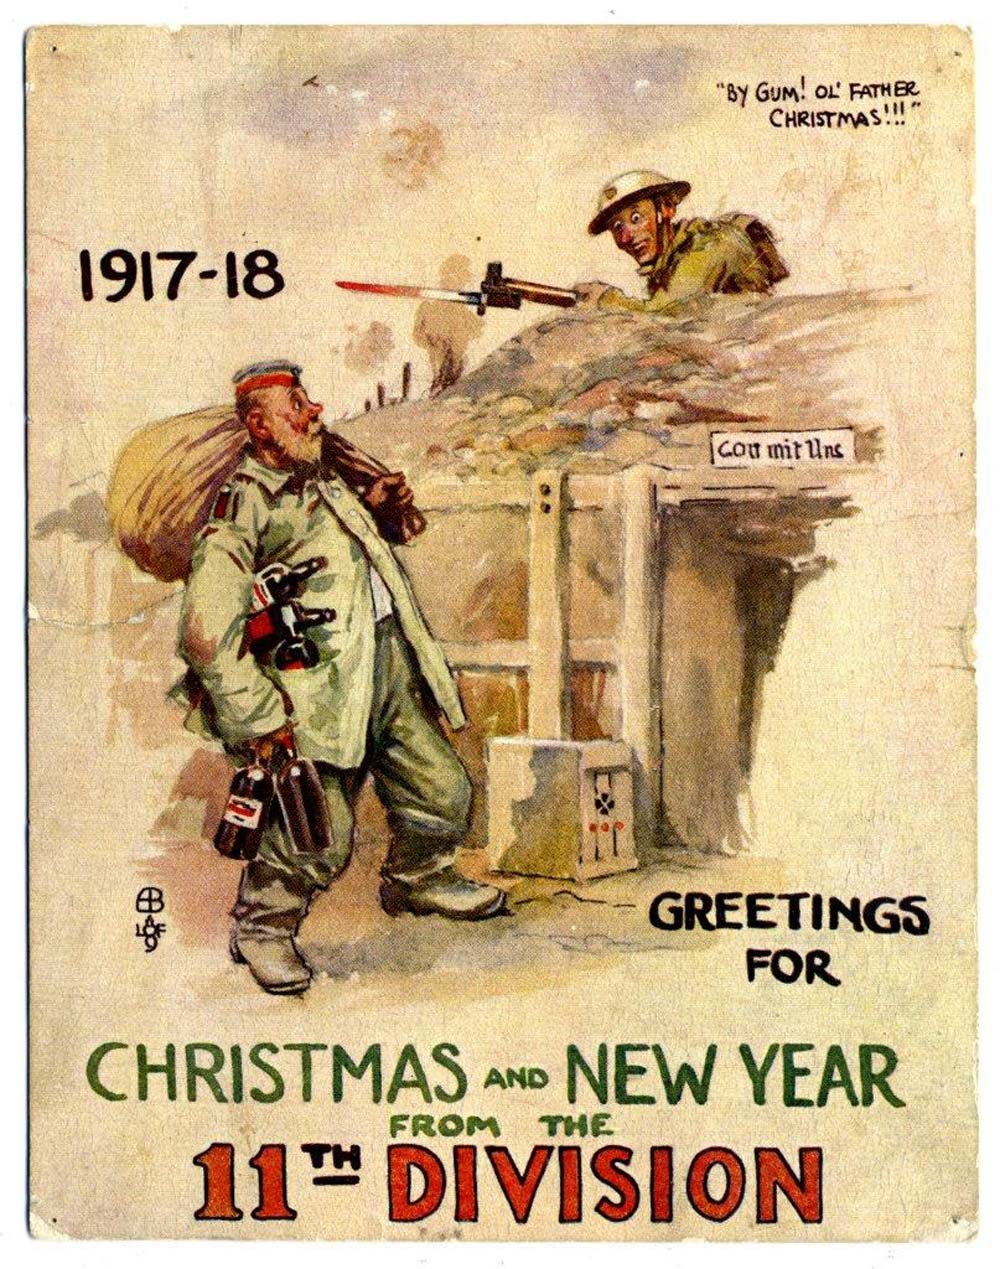 A comical Christmas card featuring a Tommy peering over a trench at a large German soldier with a sack